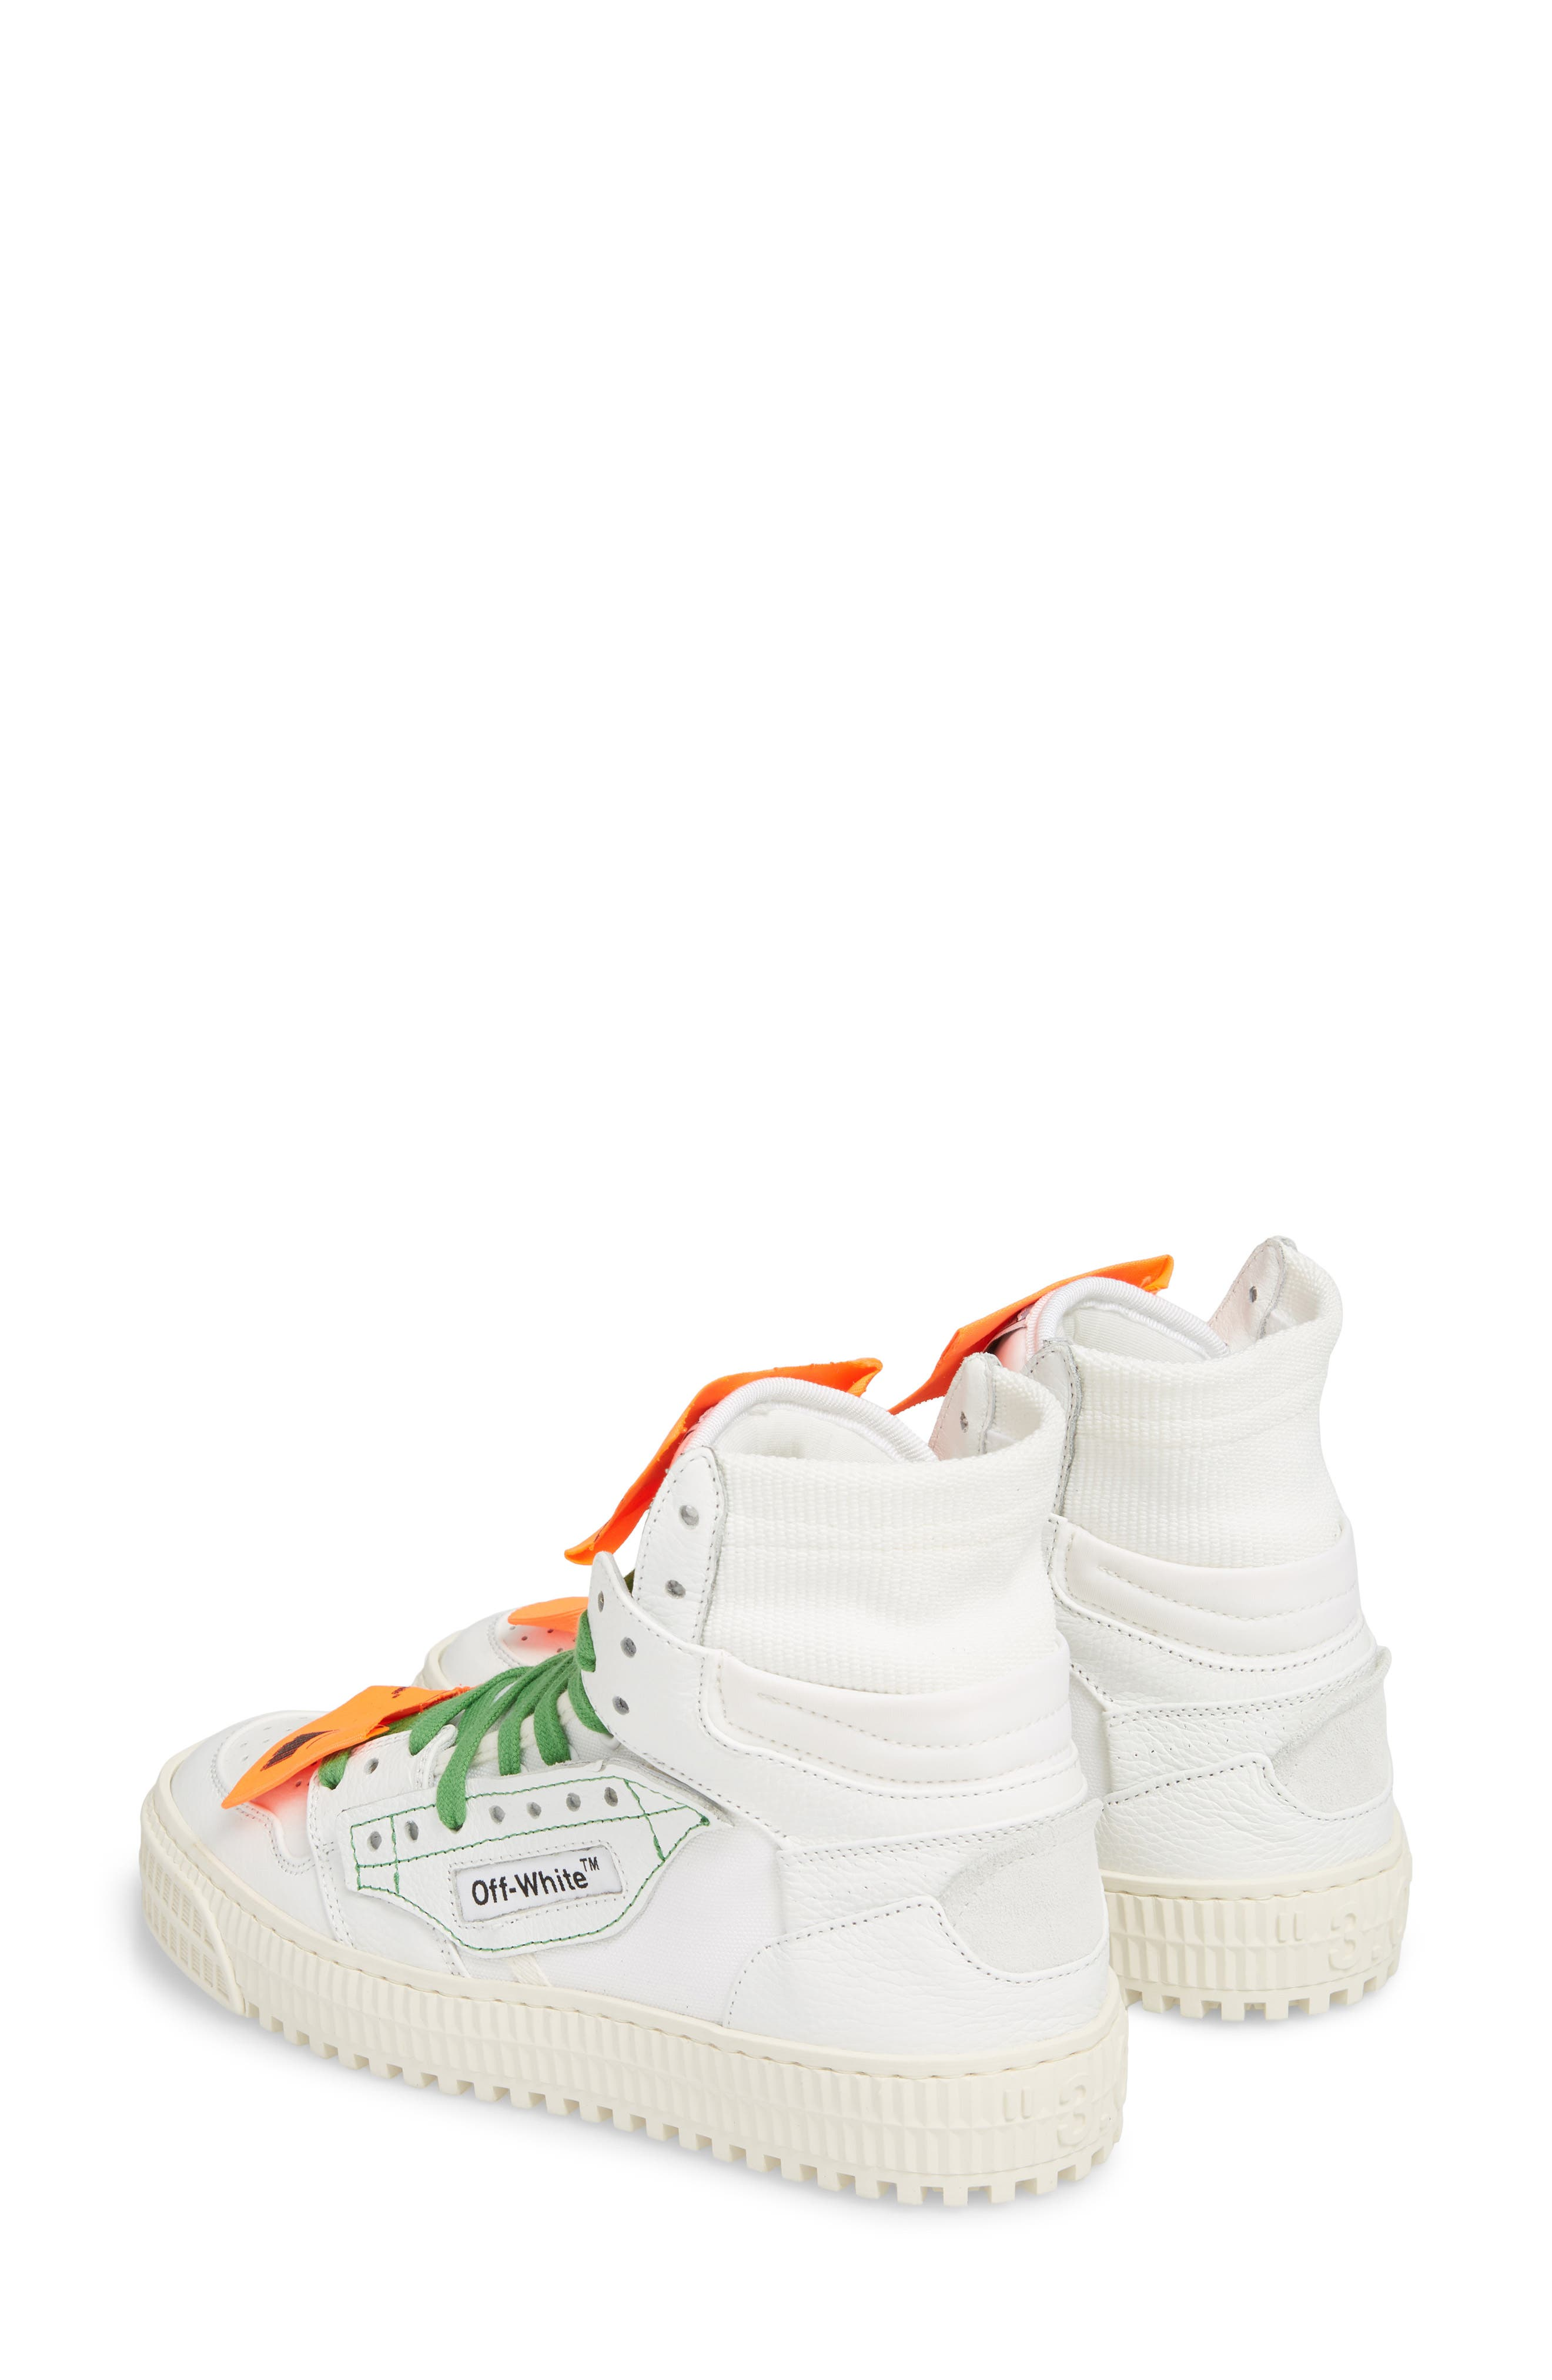 OFF-WHITE, Low 3.0 Sneaker, Alternate thumbnail 3, color, WHITE NO COLOR